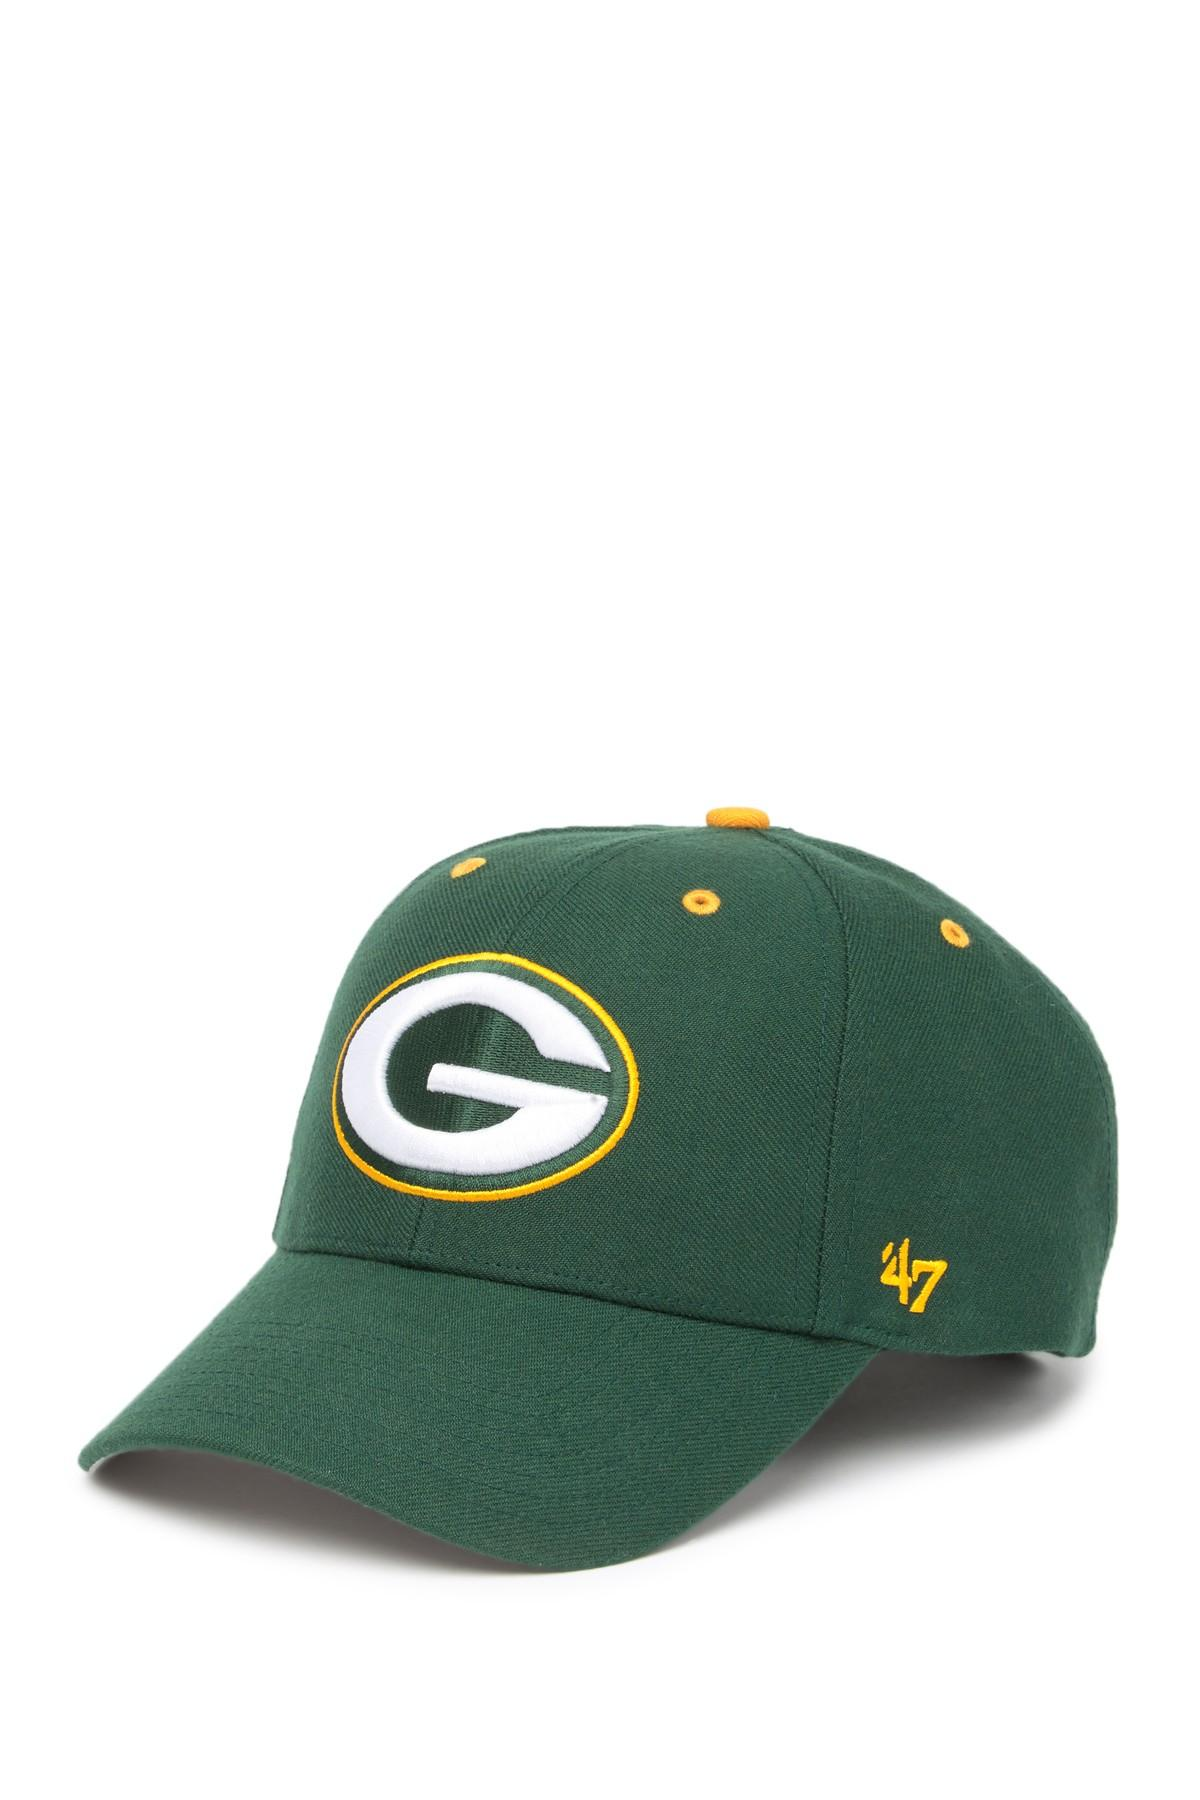 discount shop best authentic high quality 47 Brand Synthetic Nfl Green Bay Packers Older Cap for Men - Save ...